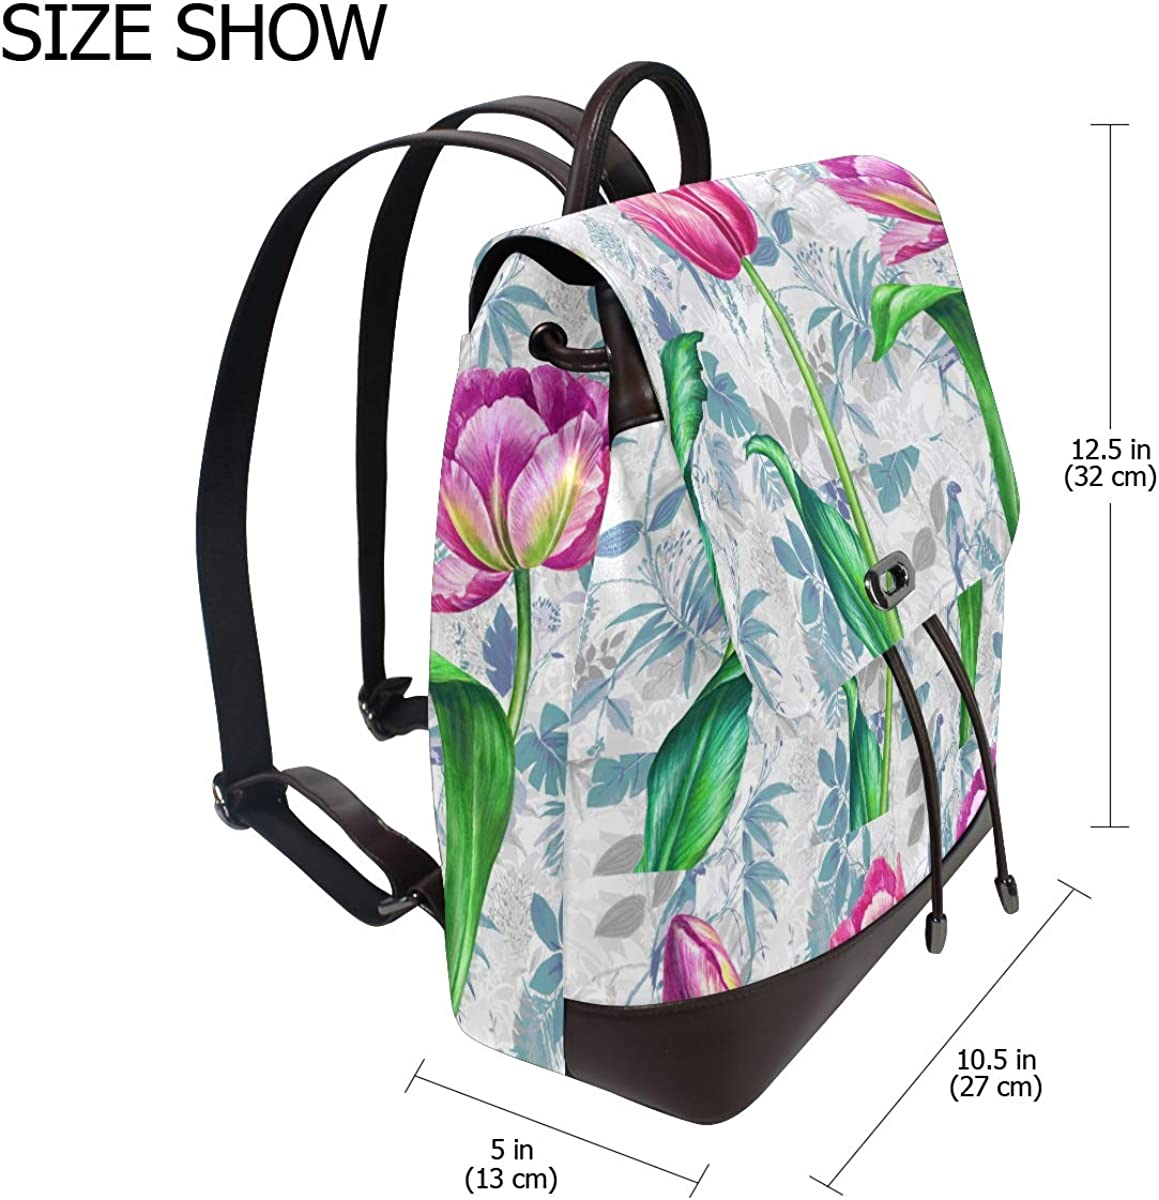 PU Leather Shoulder Bag,Fresh Spring Tulips Backpack,Portable Travel School Rucksack,Satchel with Top Handle